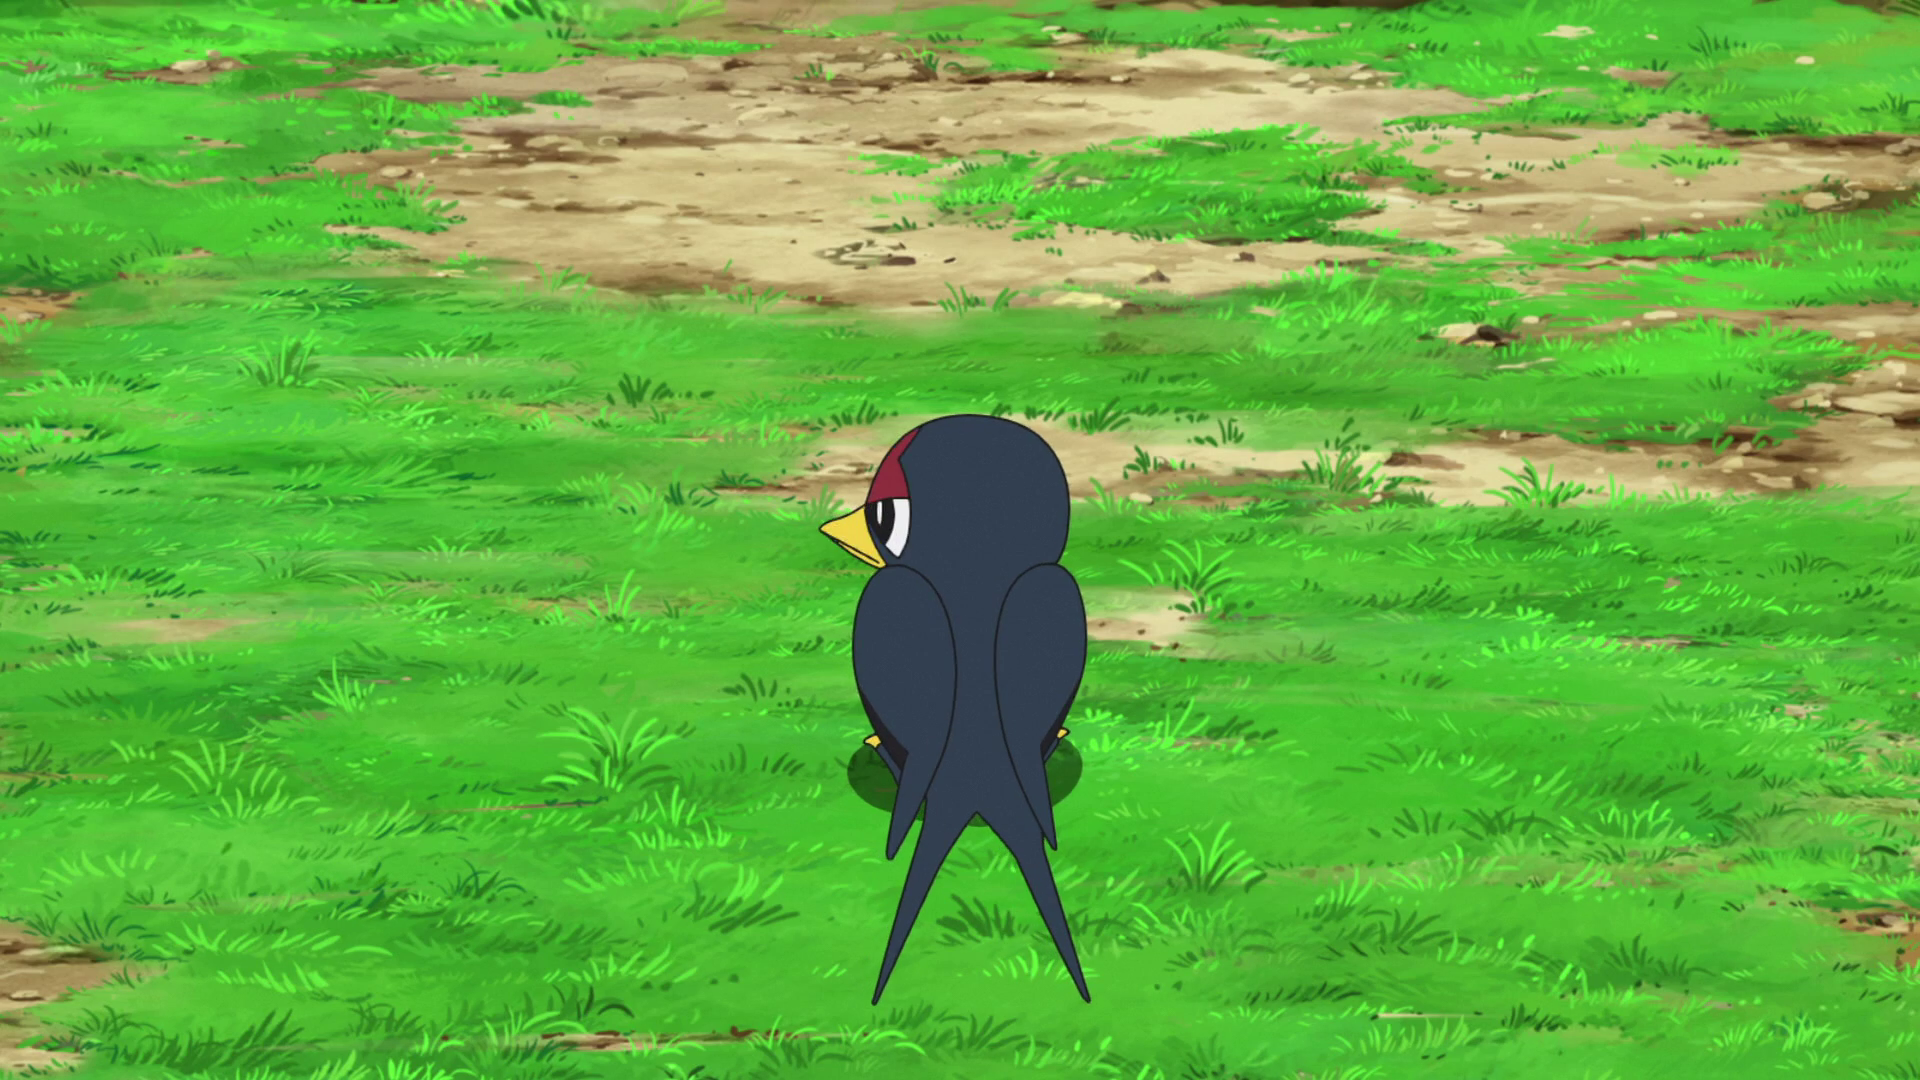 Goh Taillow